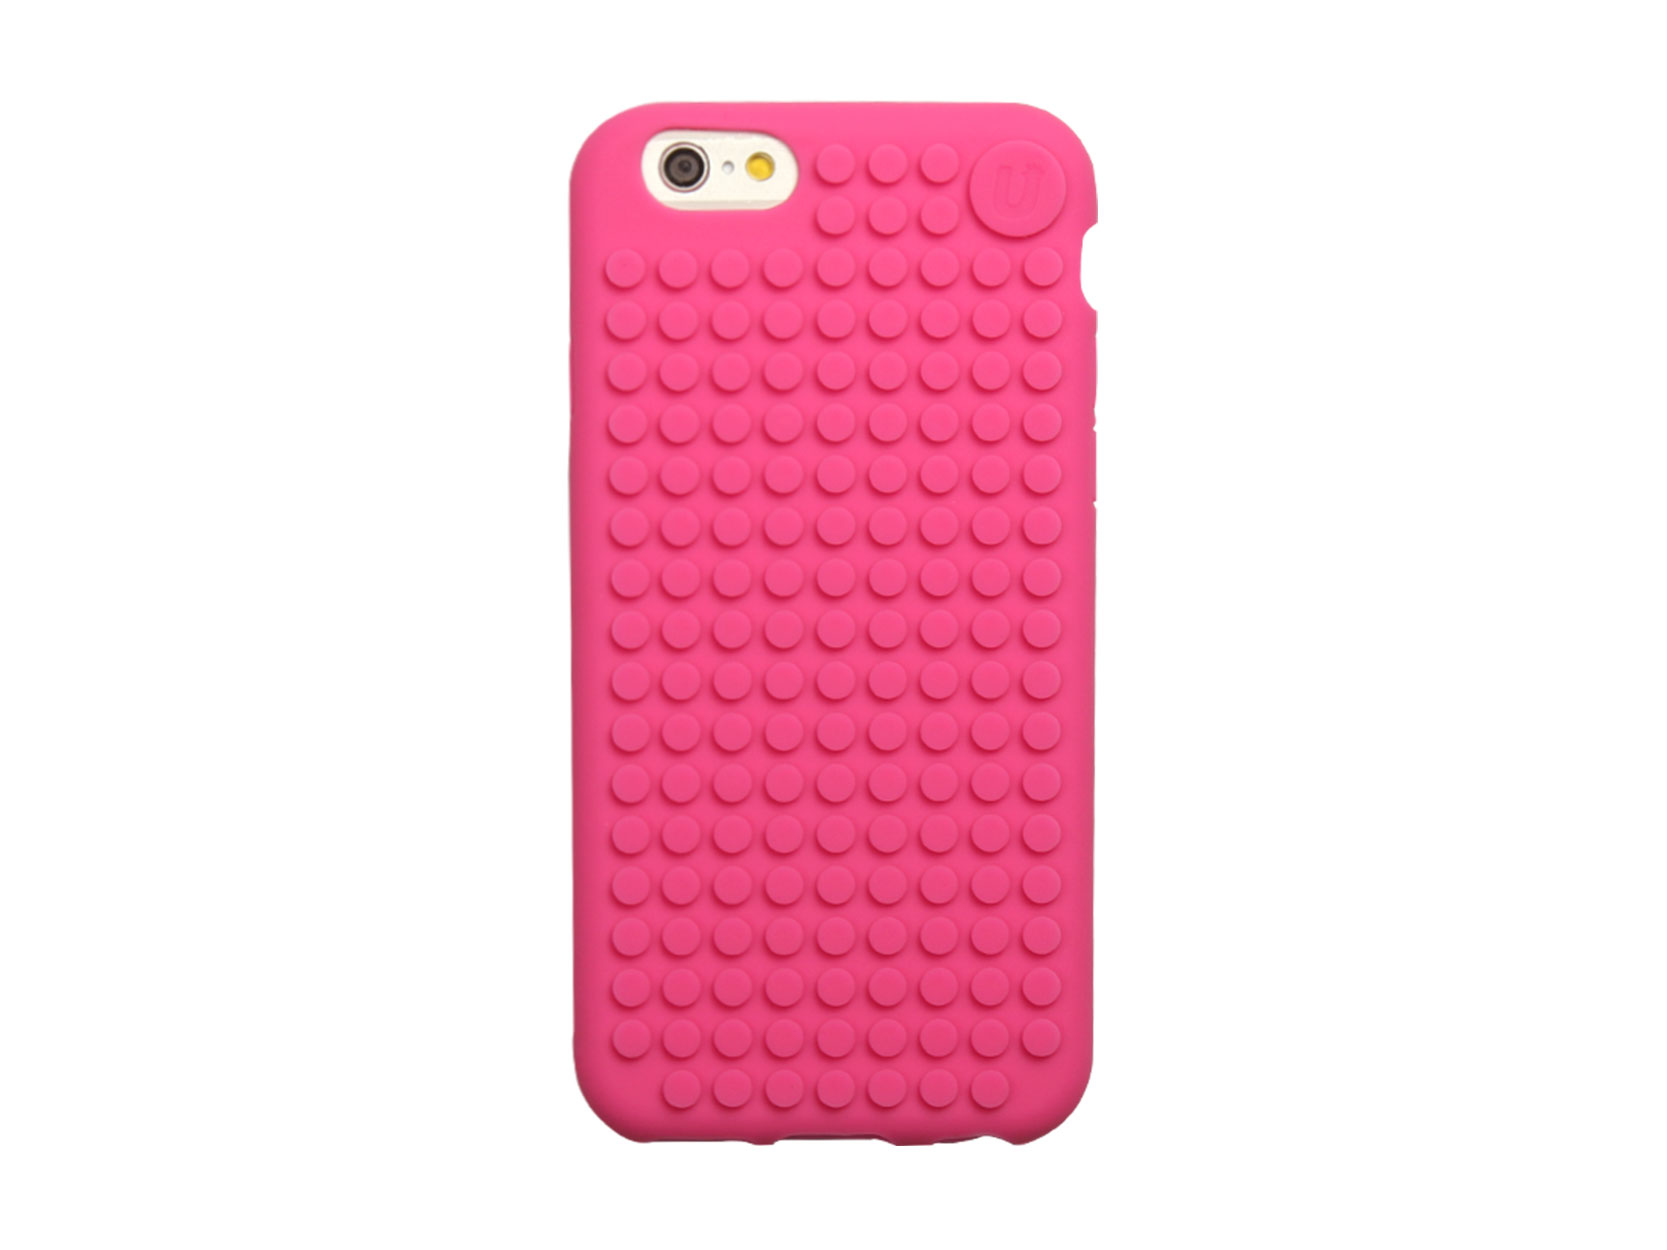 COVER P/CELULAR WY-C006 IPHONE 6/6S FUCSIA